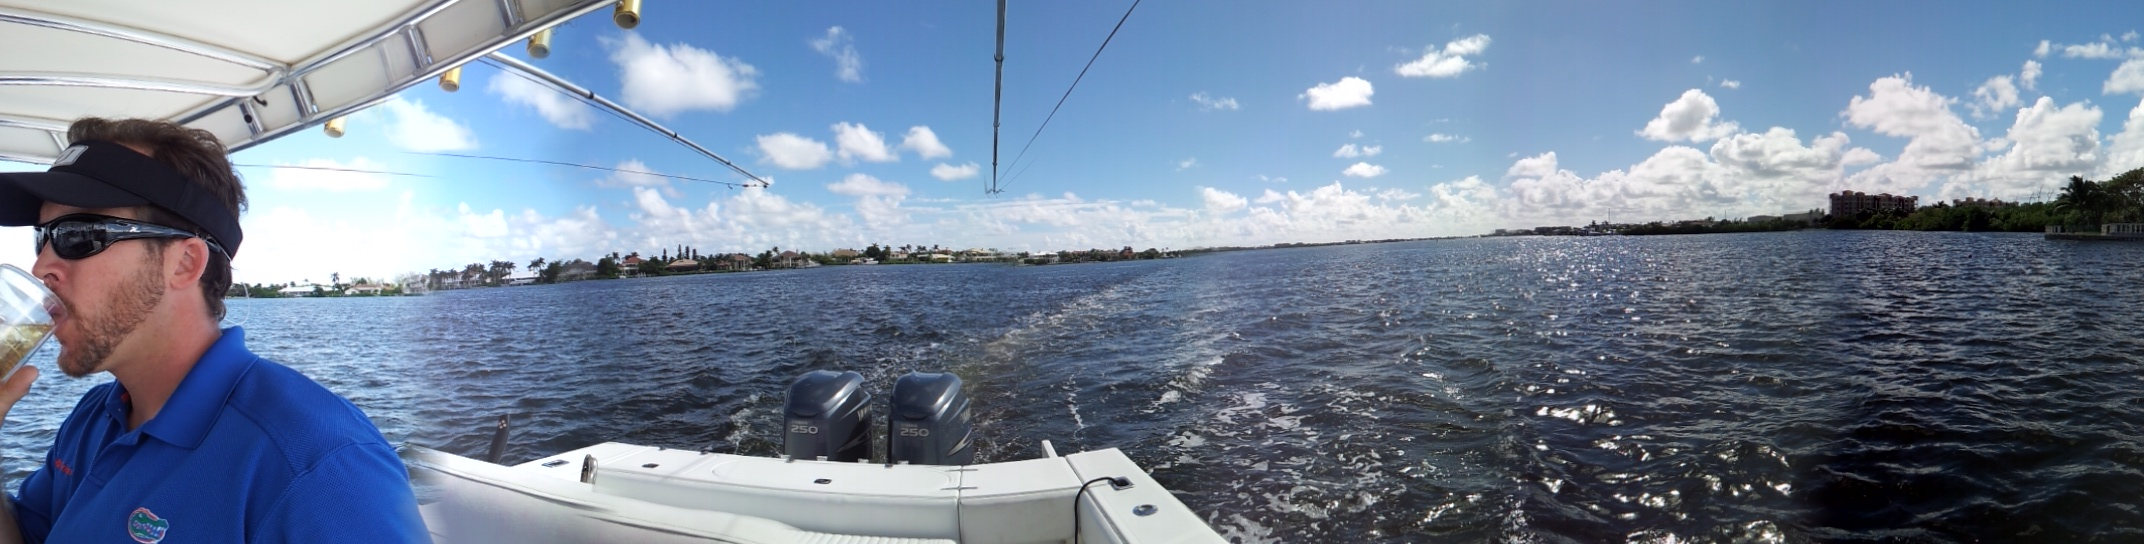 Cruising down the Intracoastal